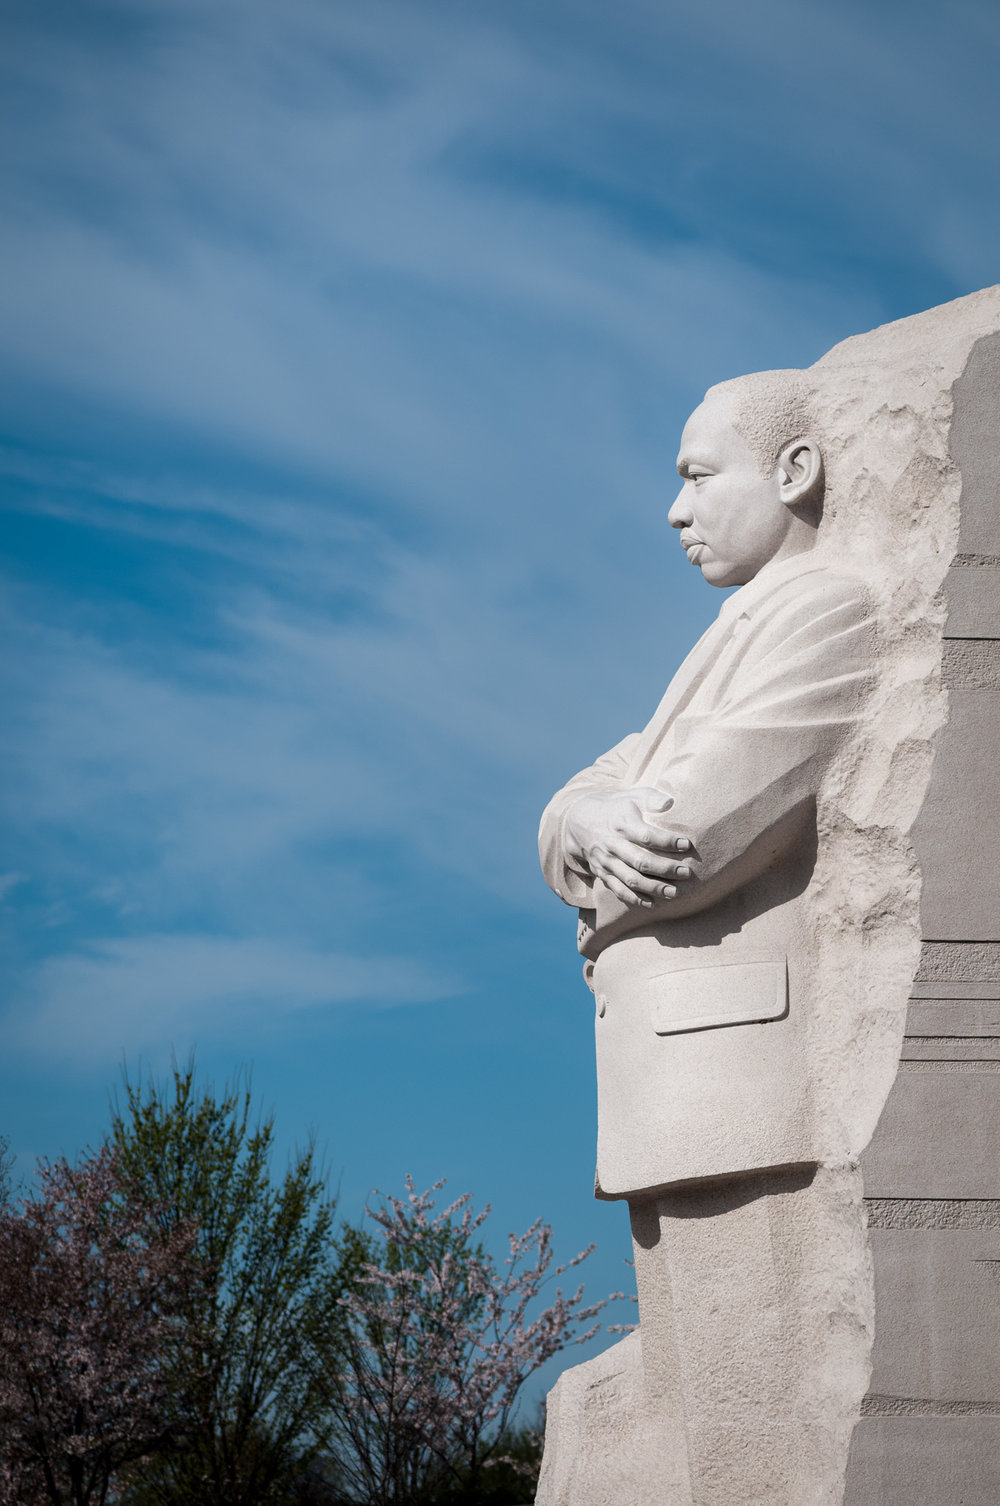 Profile of sculpture at Martin Luther King, Jr. Memorial